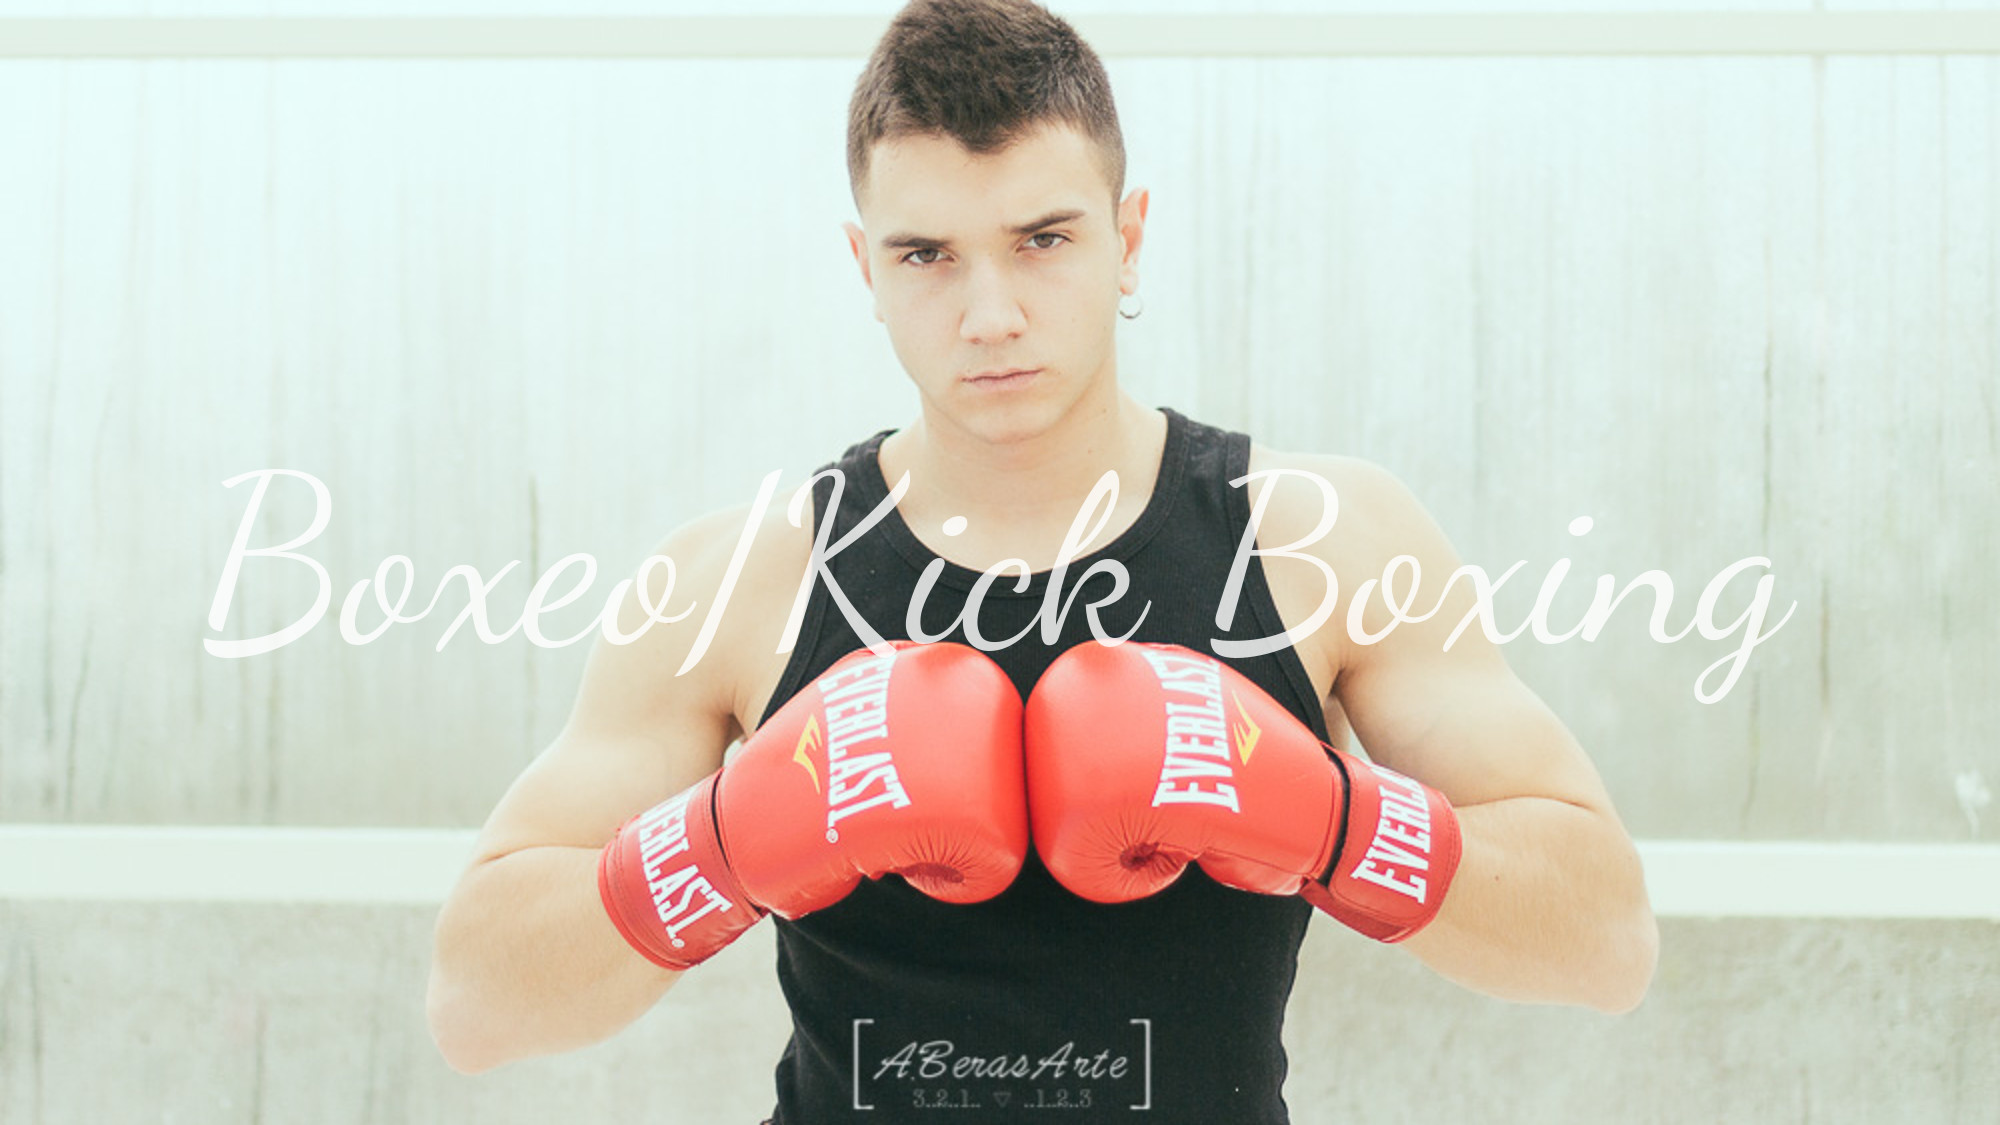 Boxeo / Kick boxing